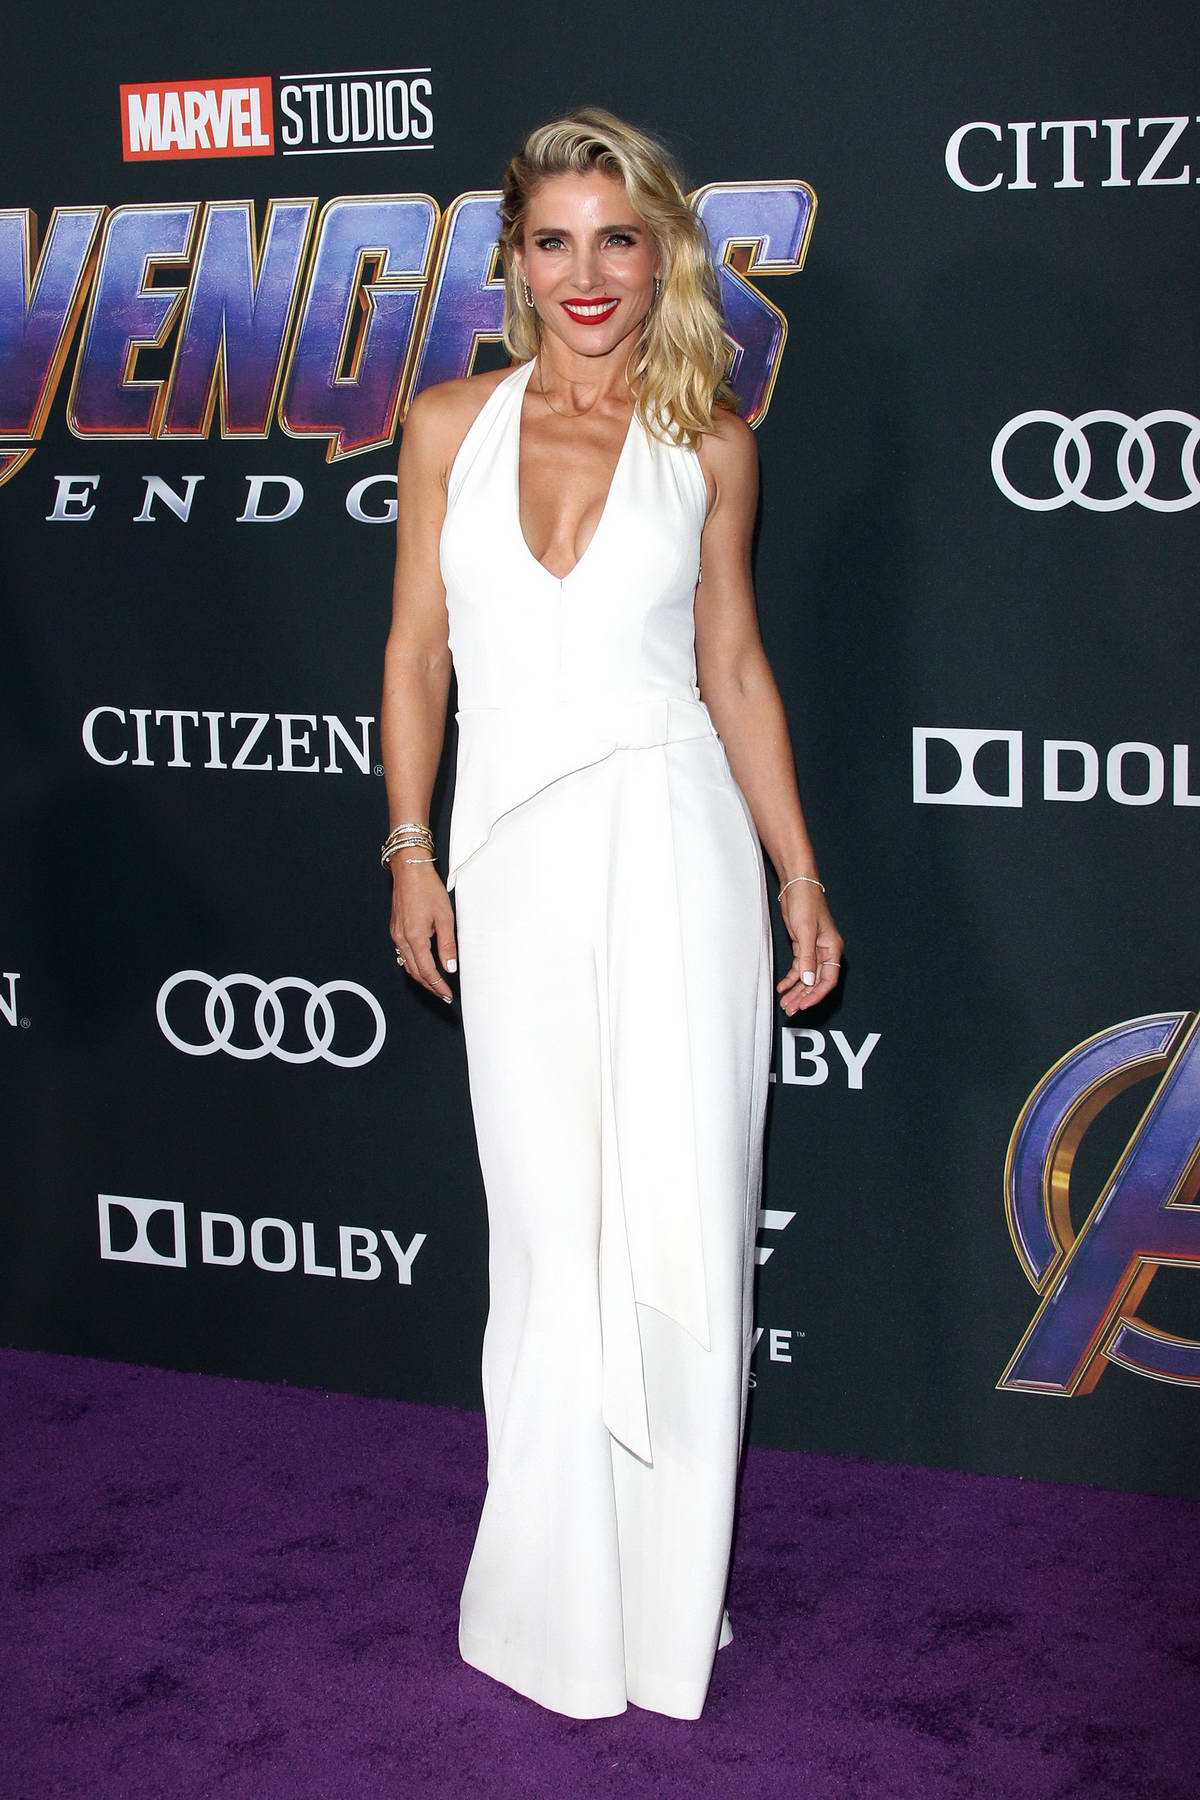 Elsa Pataky attends the World Premiere of 'Avengers: Endgame' at the LA Convention Center in Los Angeles